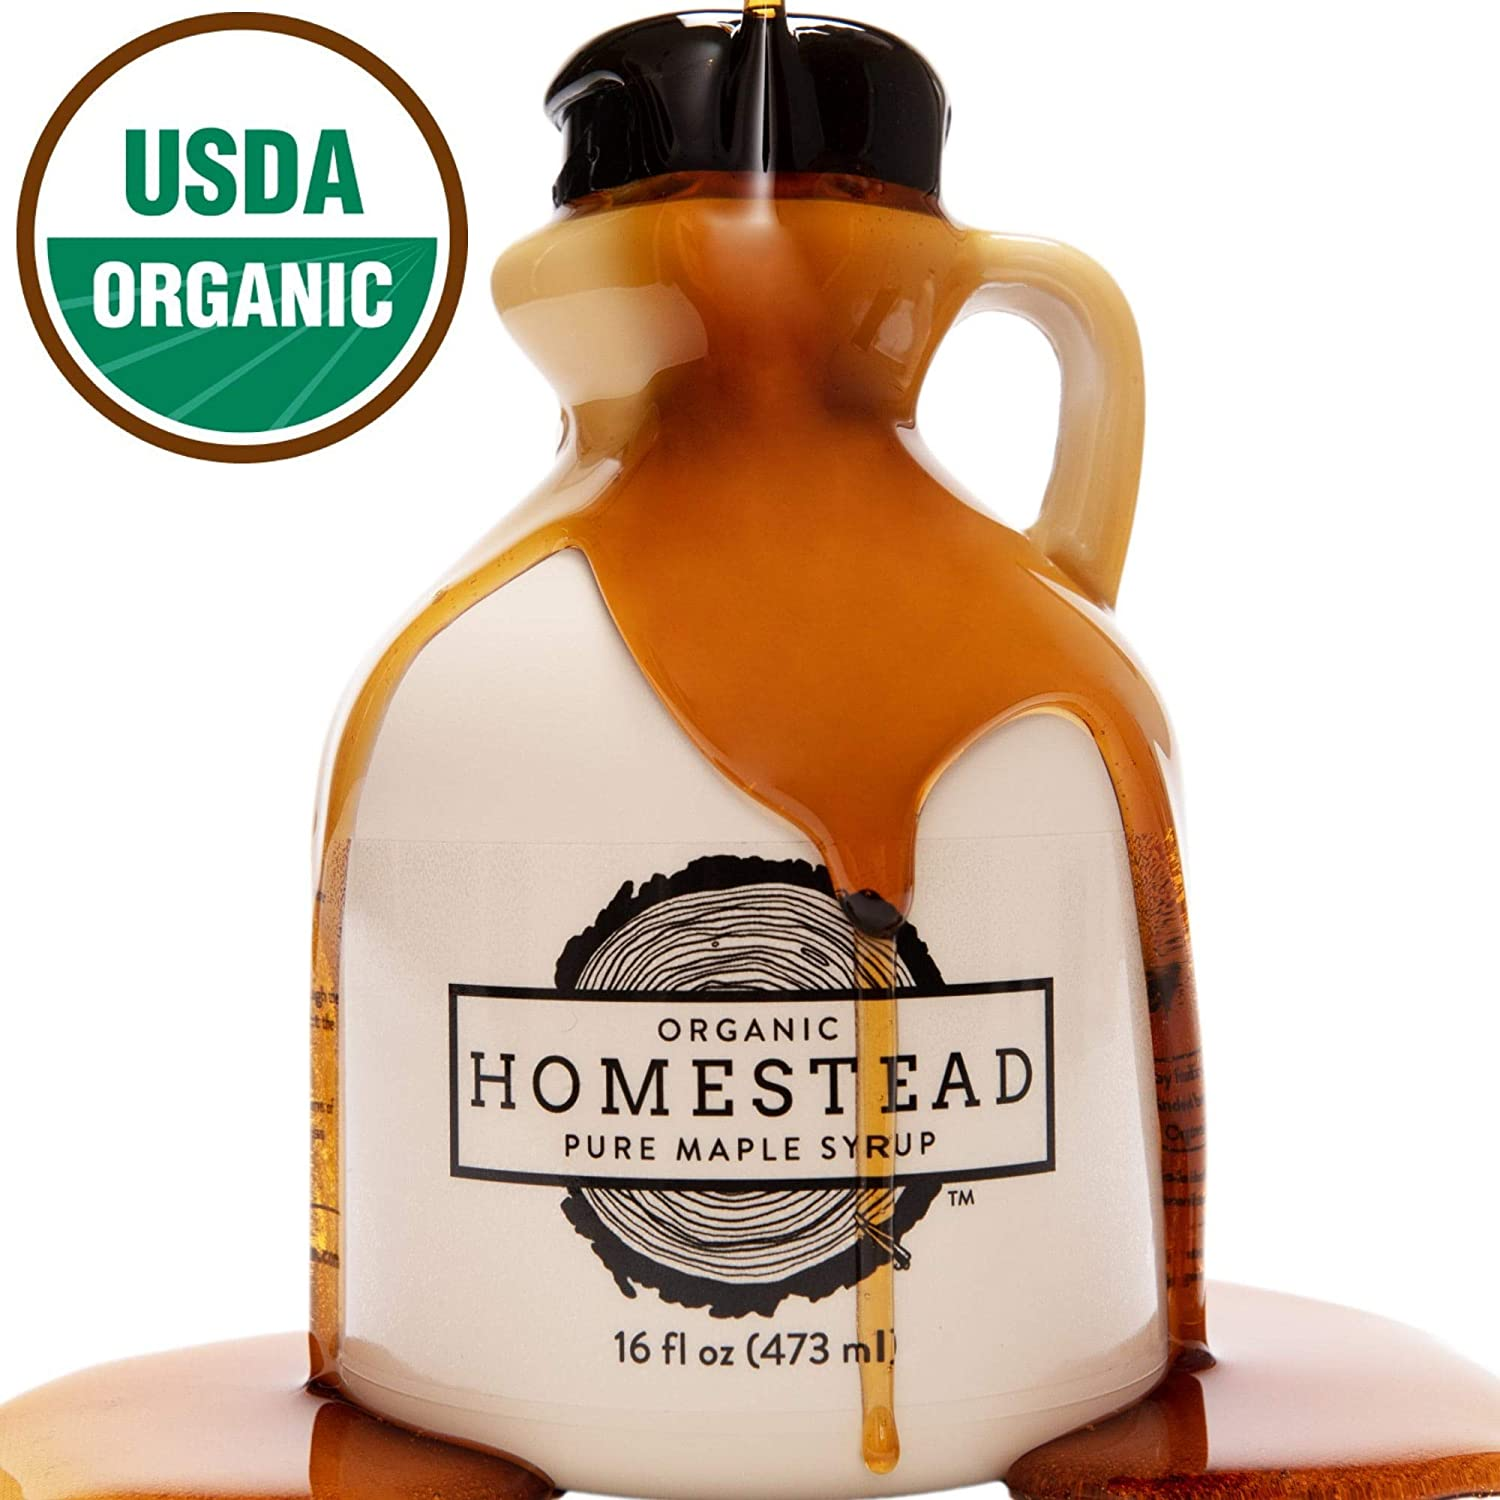 Homestead Organic Maple Syrup, Real and Pure USDA Organic Grade A Dark Maple Syrup, Homemade in Wisconsin, 16-Ounce Jug